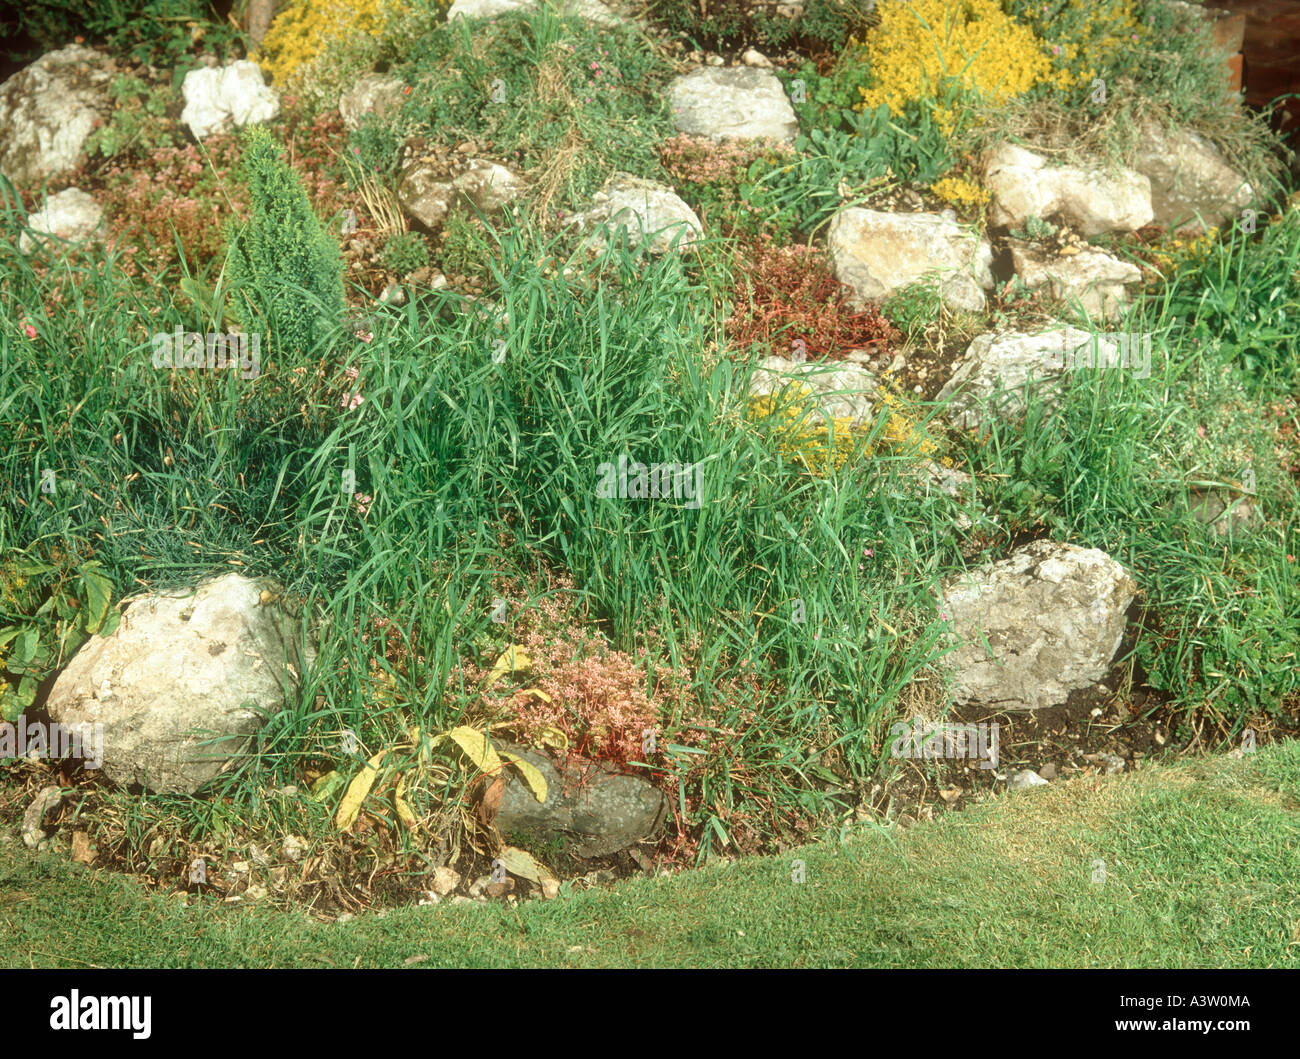 Grass Couch Couch Grass Agropyron Repens Infesting Rockery And Flower Beds In